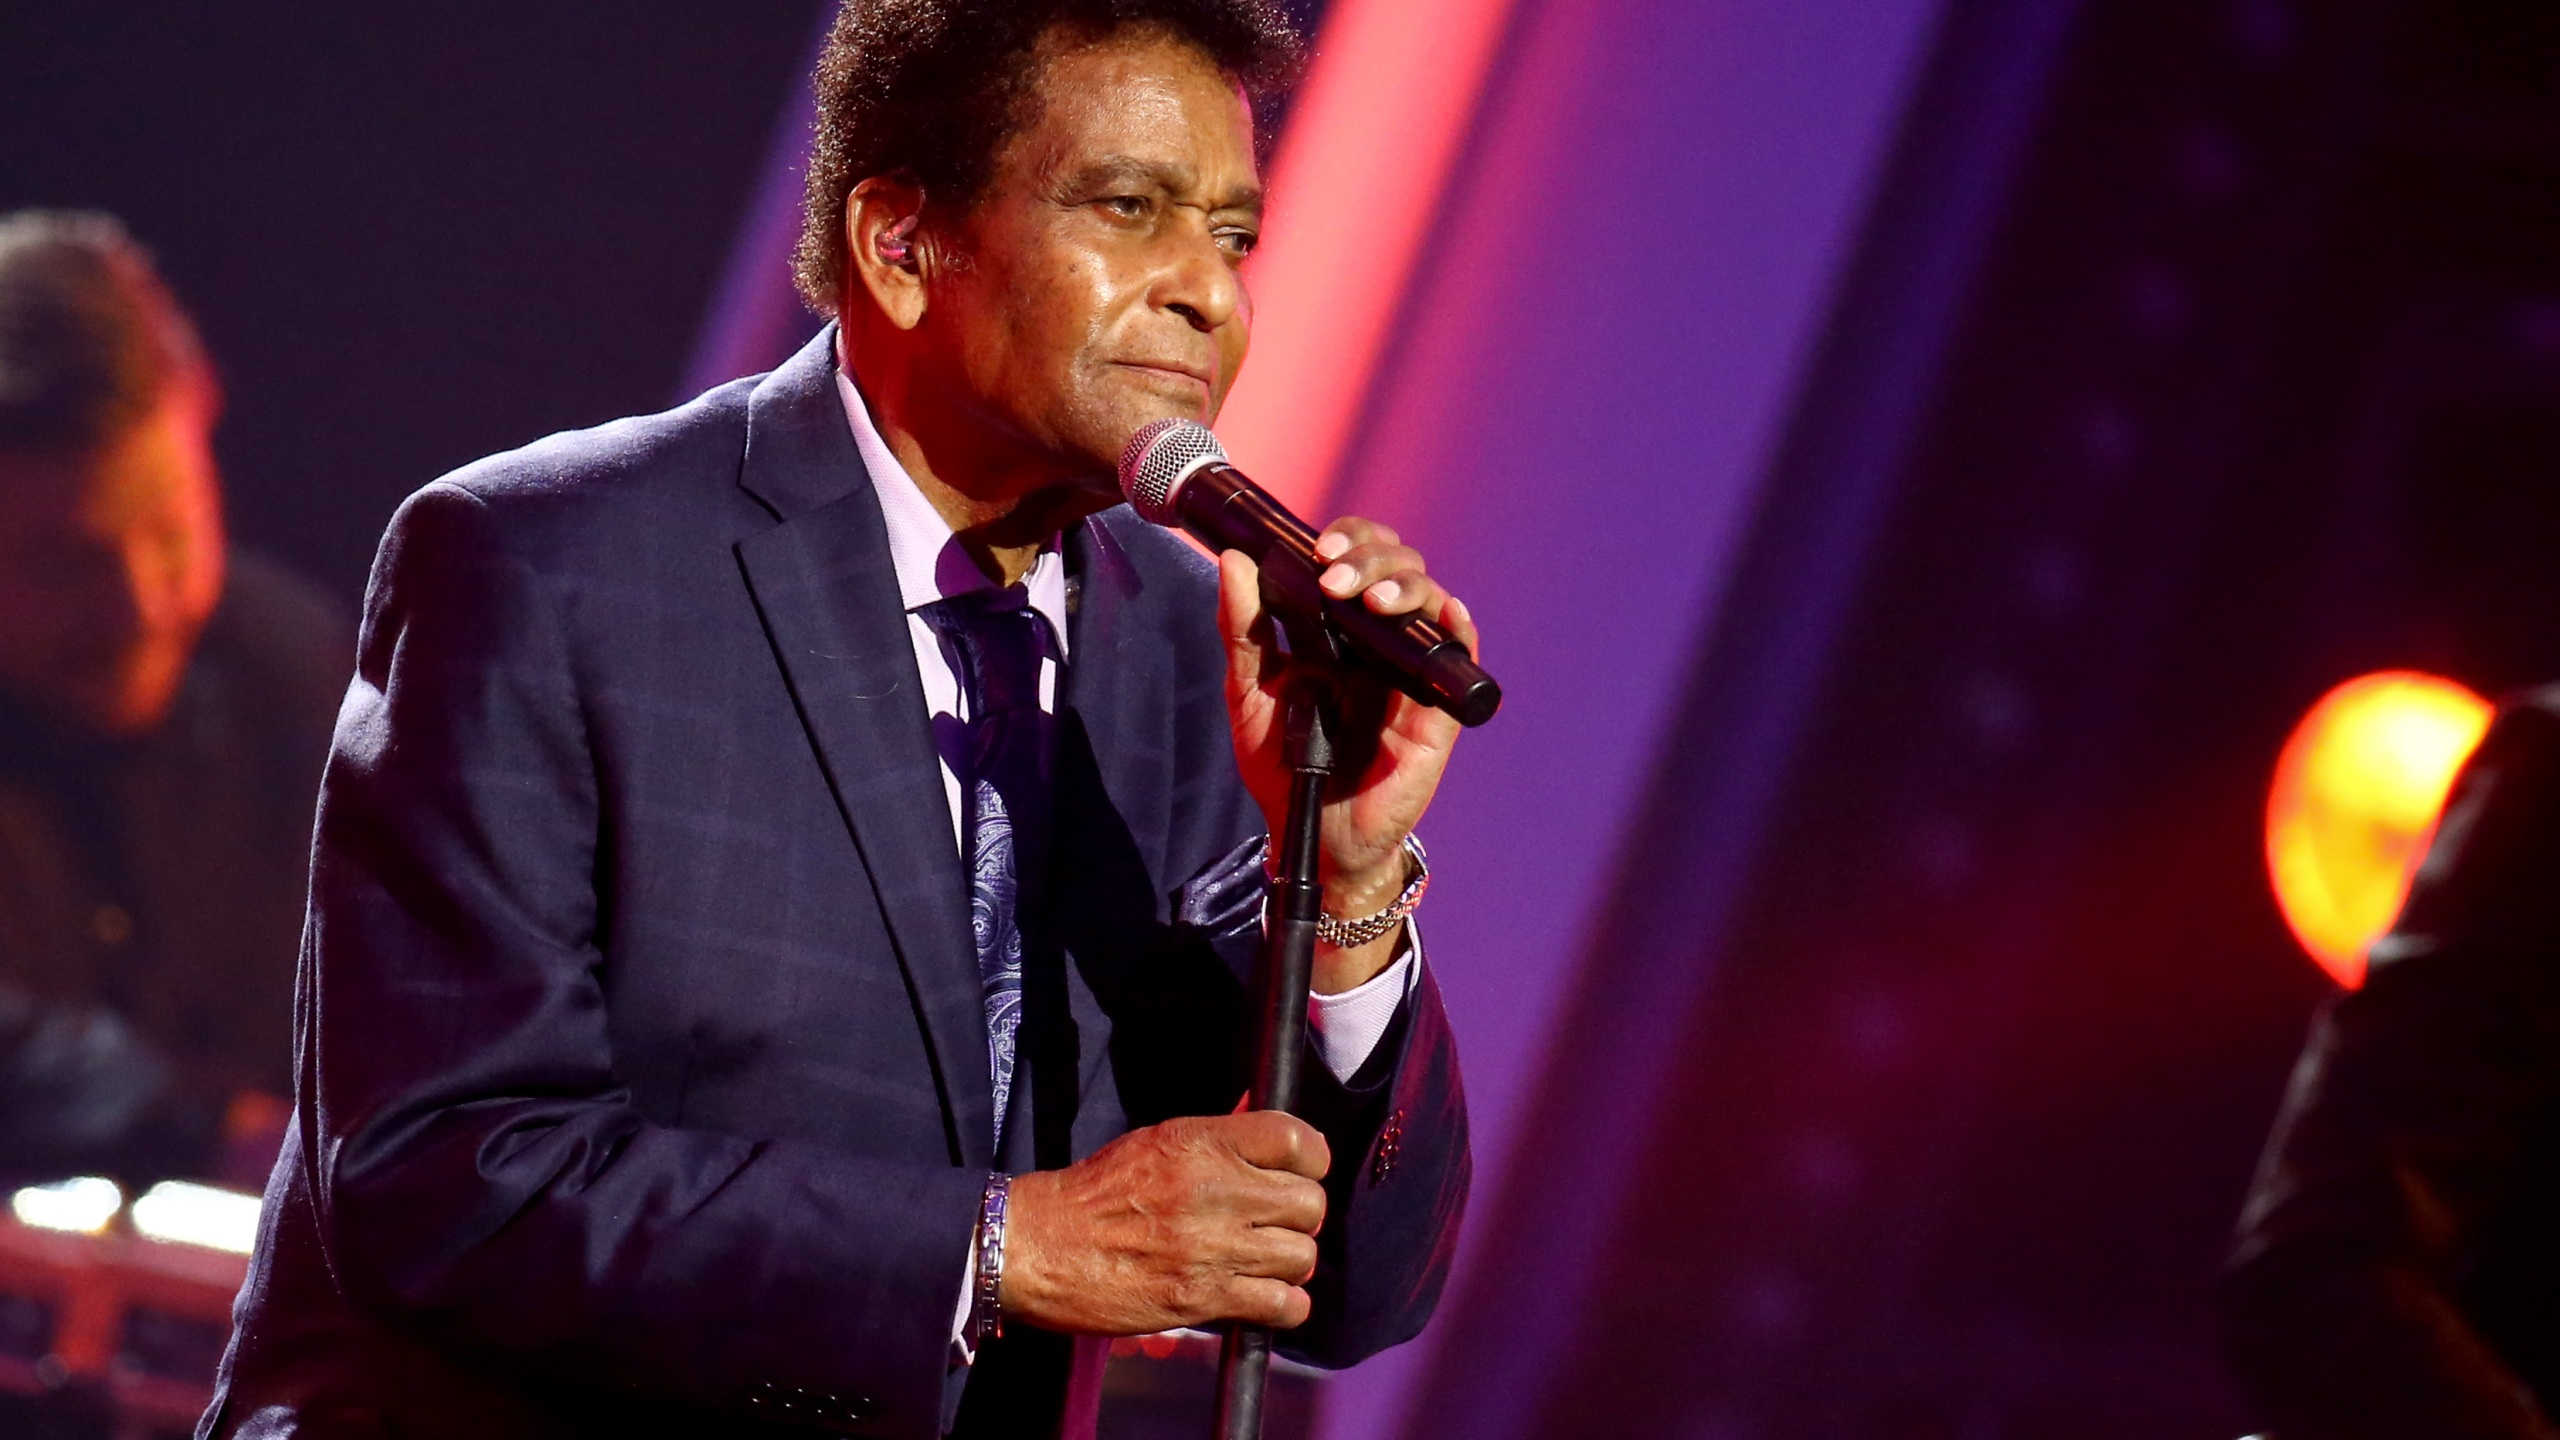 Charley Pride performs on stage during the the 54th Annual CMA Awards at Nashville's Music City Center on Wednesday, Nov. 11, 2020 in Nashville, Tennessee. (Terry Wyatt/Getty Images for CMA)